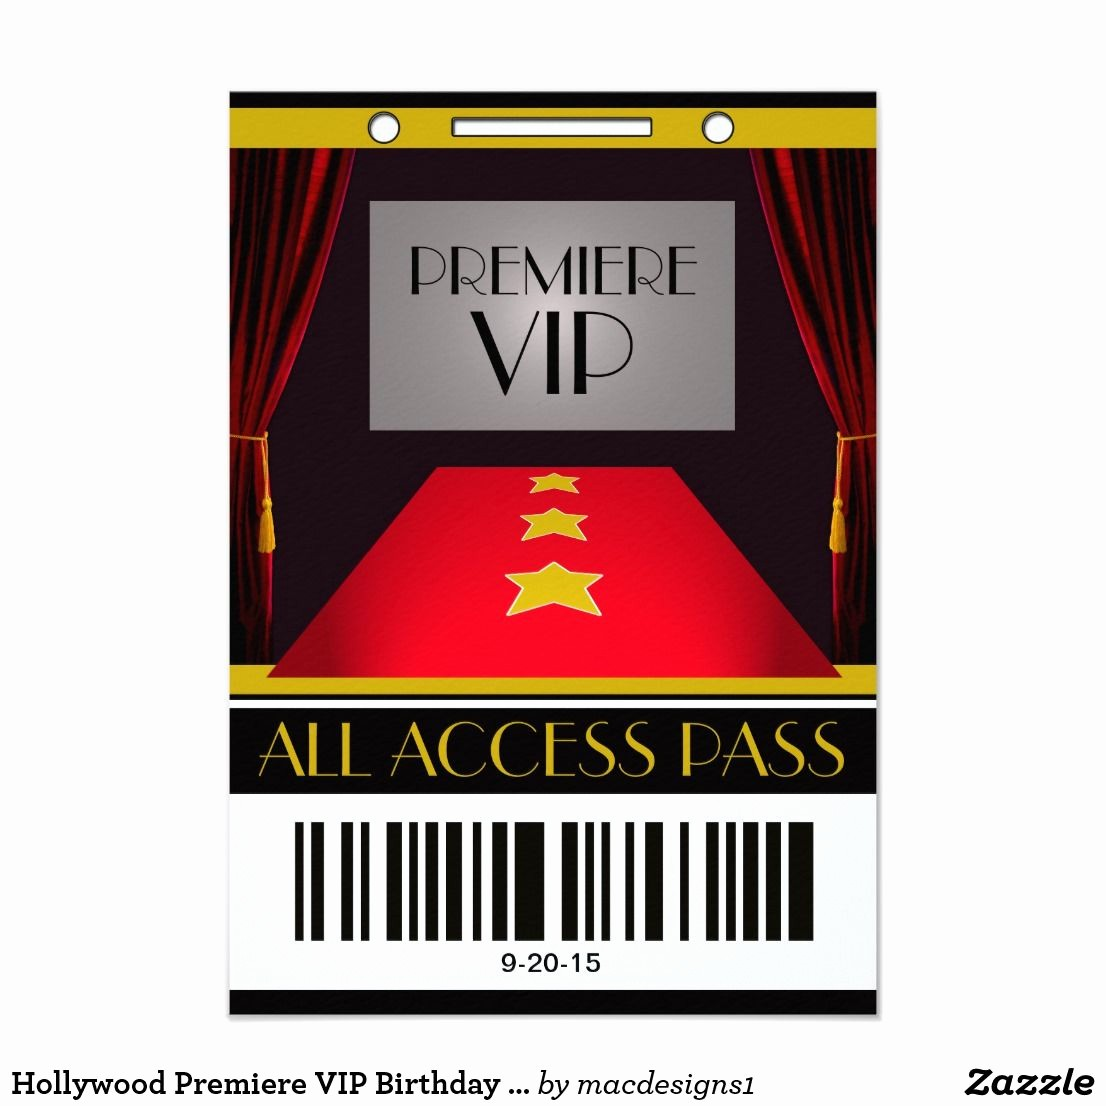 Movie Premiere Invitation Template Free Beautiful Hollywood Premiere Vip Birthday Party Card